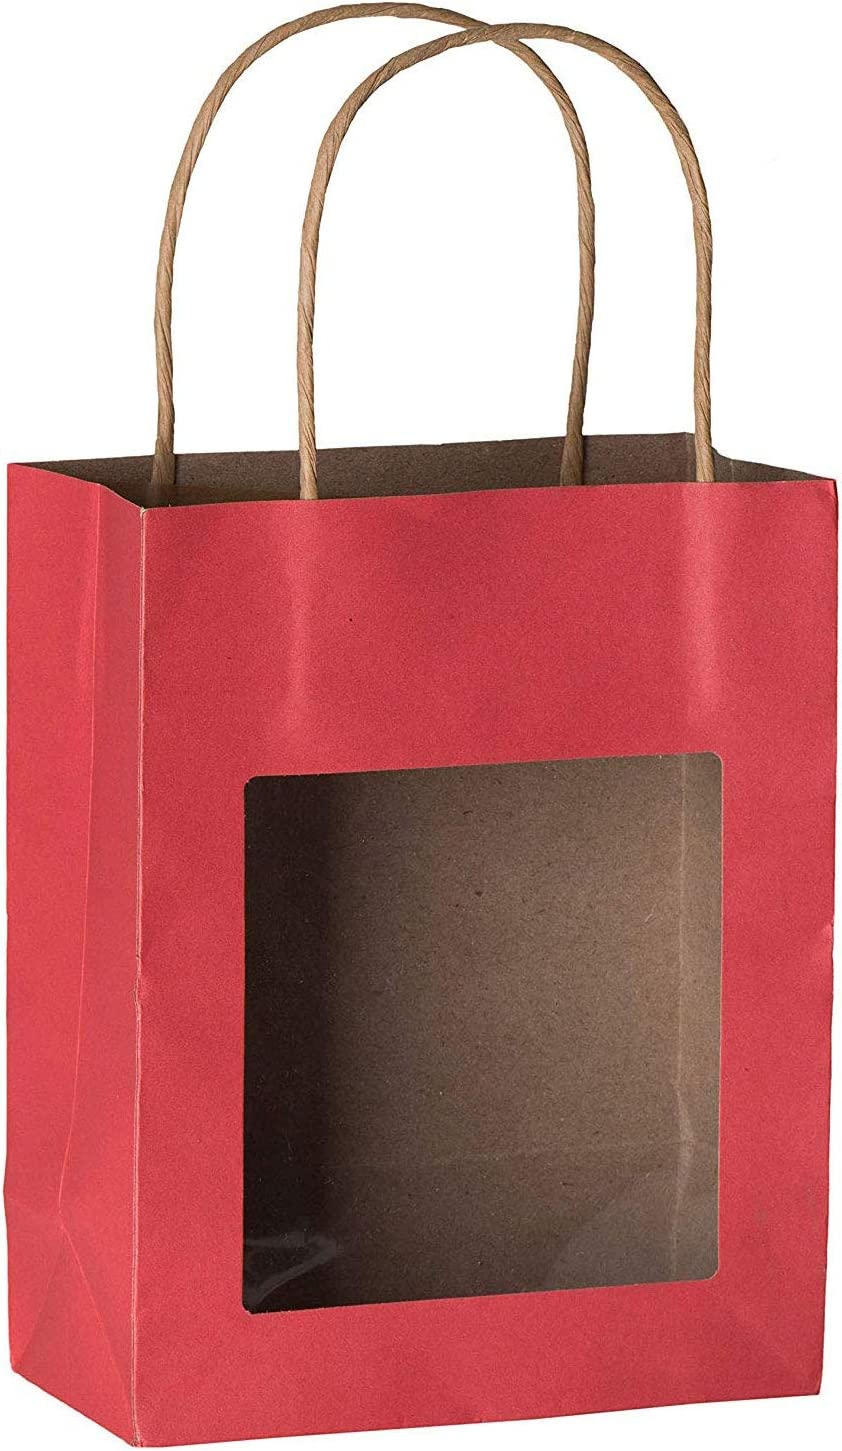 Hammont Red Kraft Paper Bag with Window (10 Pack) - Food Storing Pouches with Handles, Gift Bags with Transparent Window 7.75